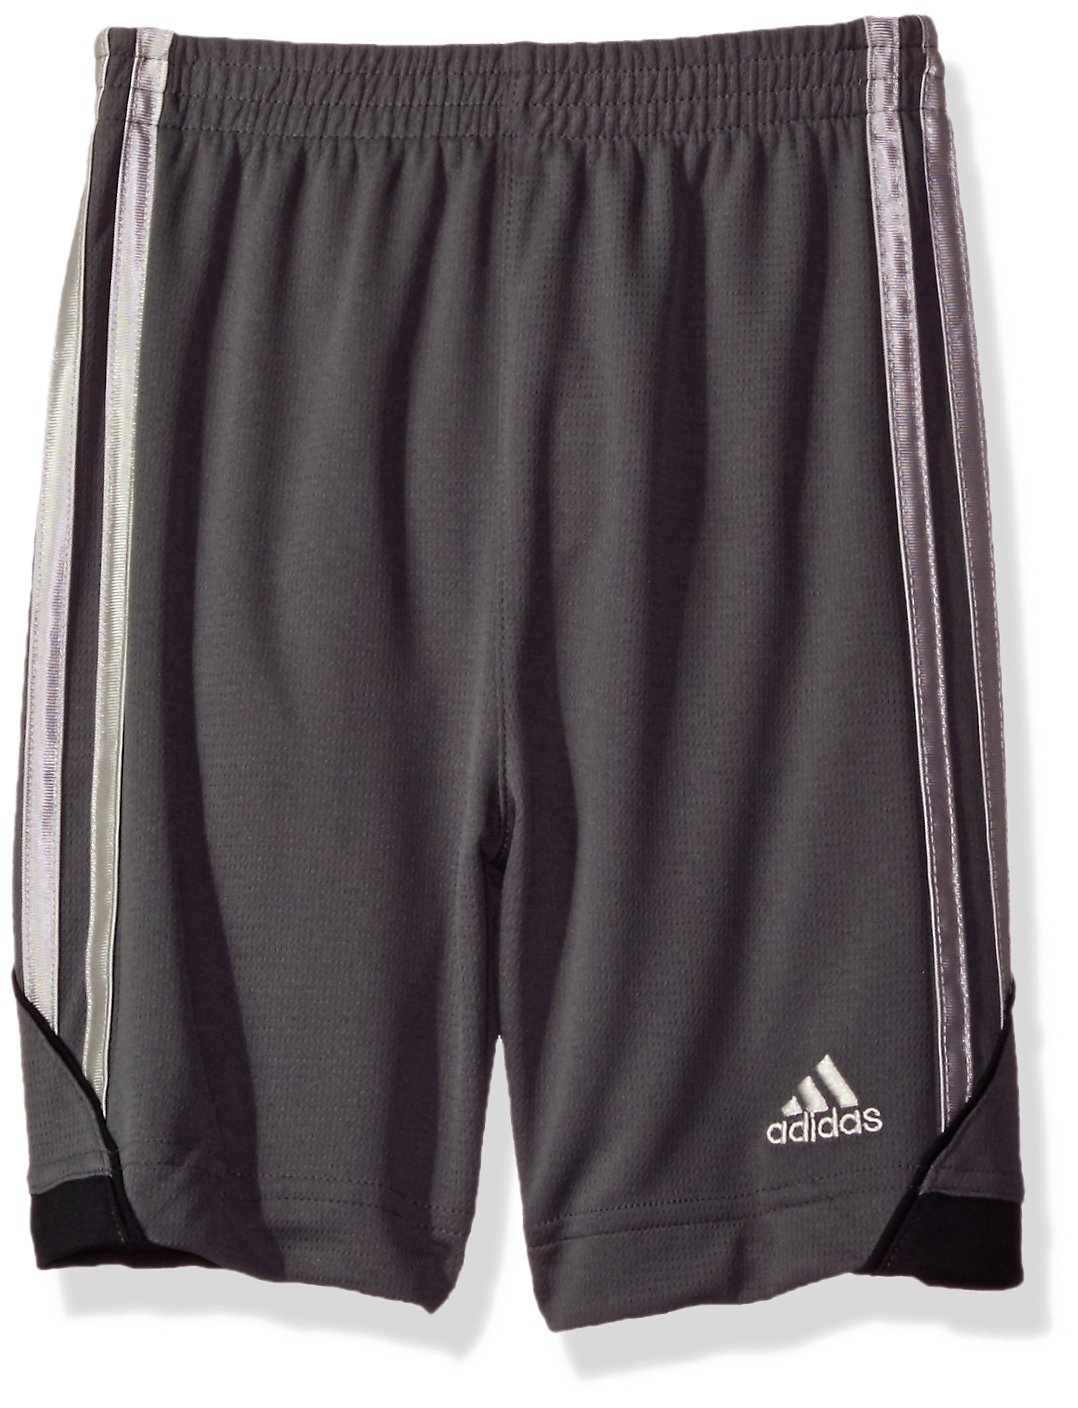 adidas Boys' Little Athletic Short, Dark Gray 6